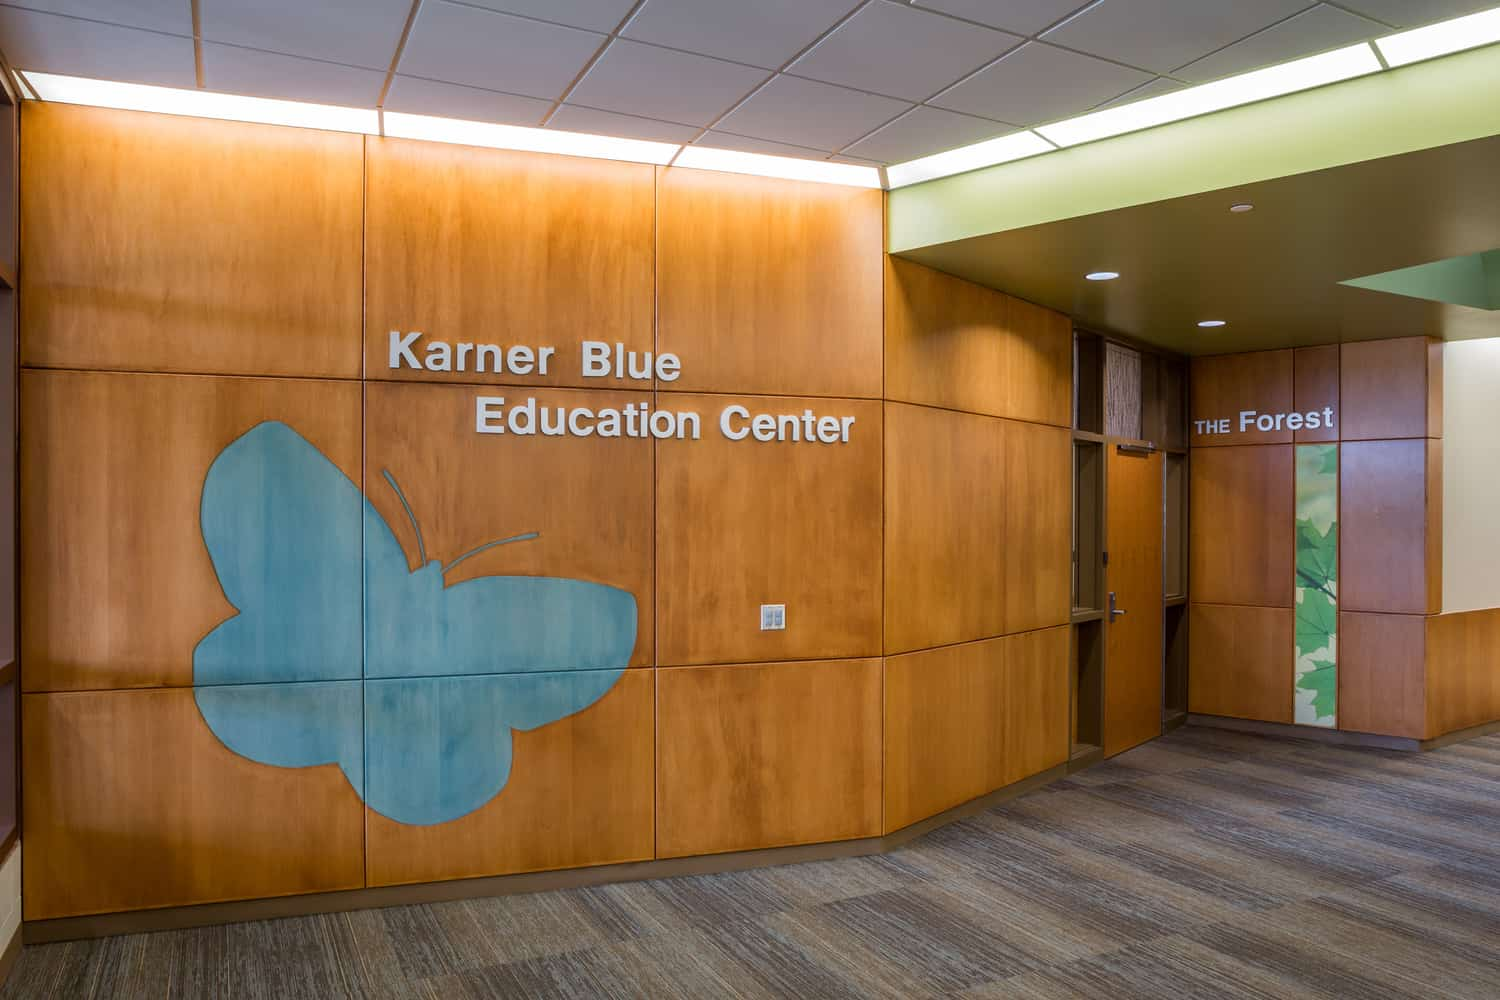 KARNER BLUE EDUCATION CENTER KARNER BLUE EDUCATION CENTER